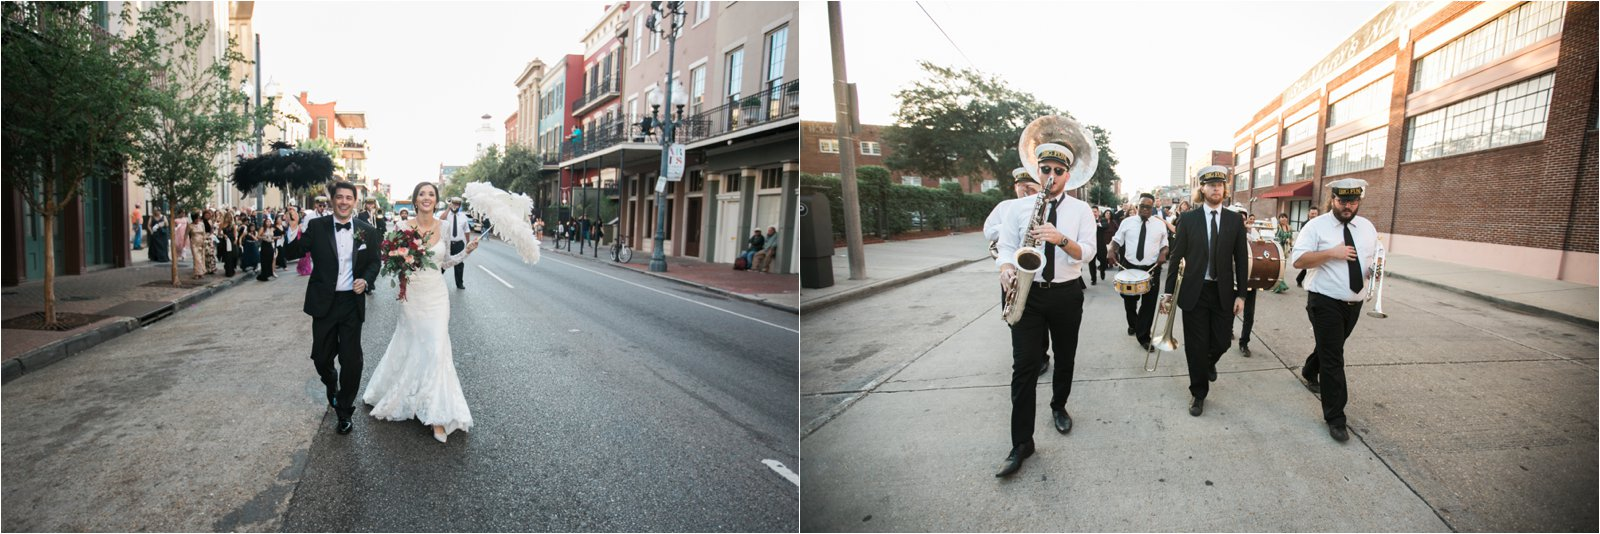 047_New Orleans wedding photographer.jpg